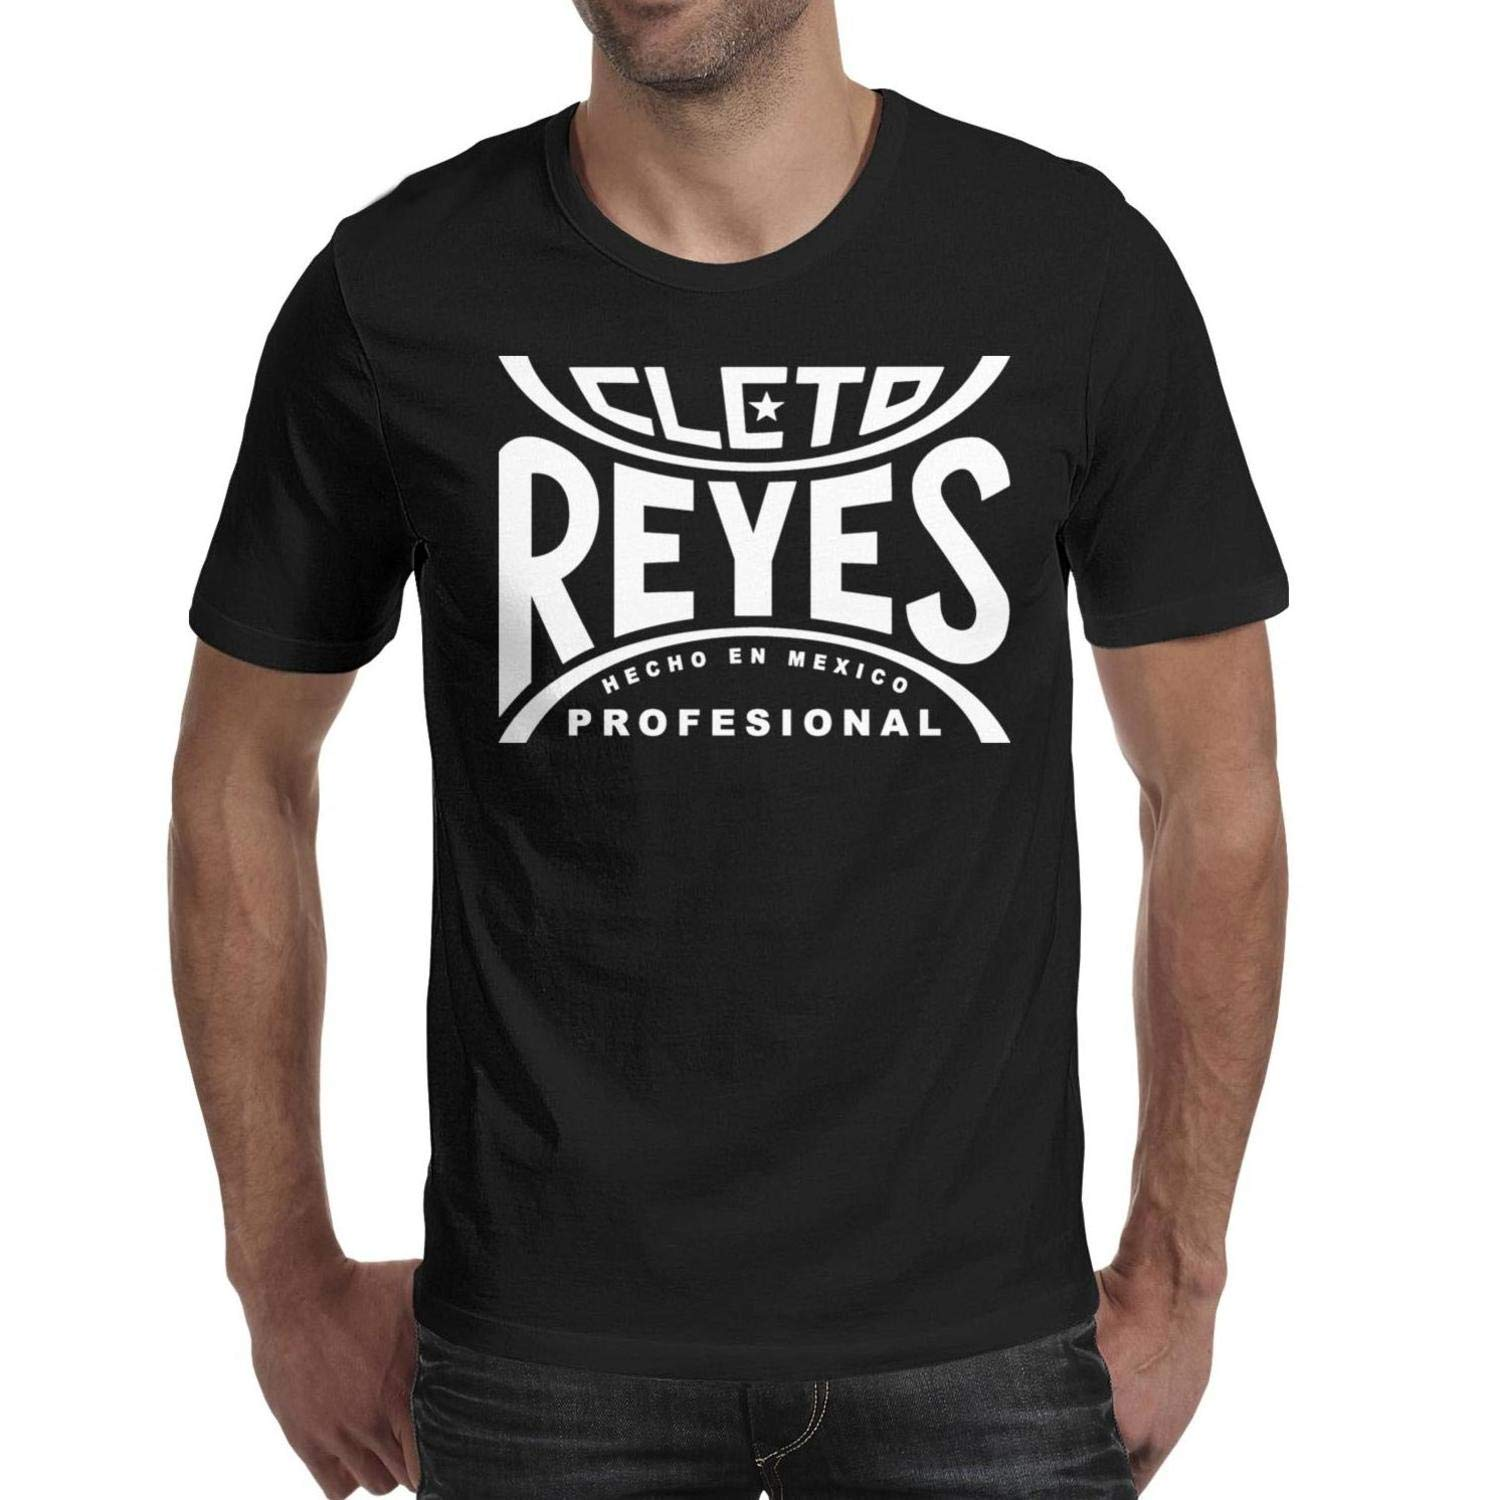 Classic Mens Athletic Tee-Logo-Funny-Cleto-Reyes-T Shirt Casual Basic